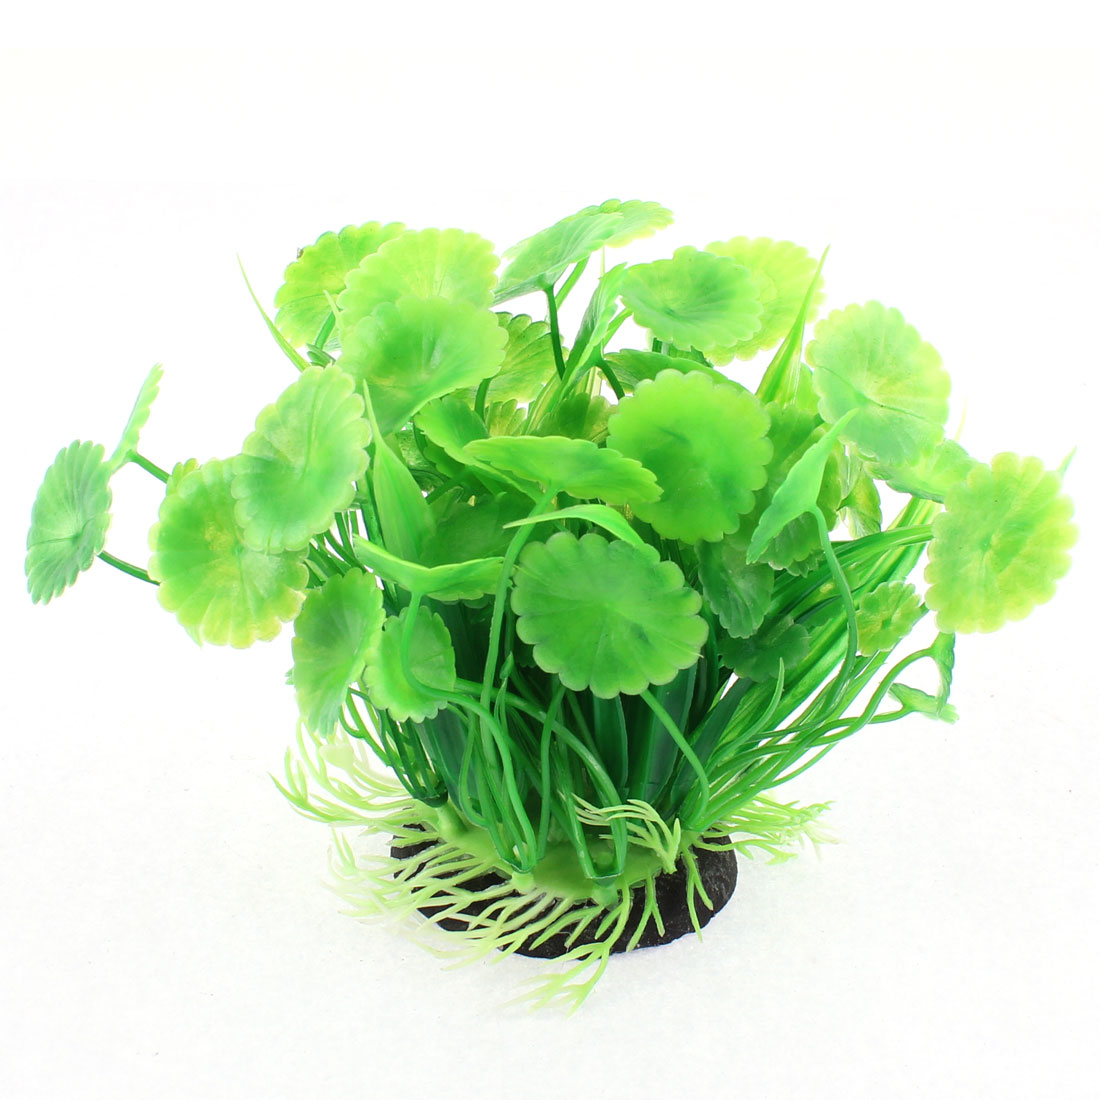 Aquarium Plastic Simulated Water Plant Grass Decoration Green 3 Pcs